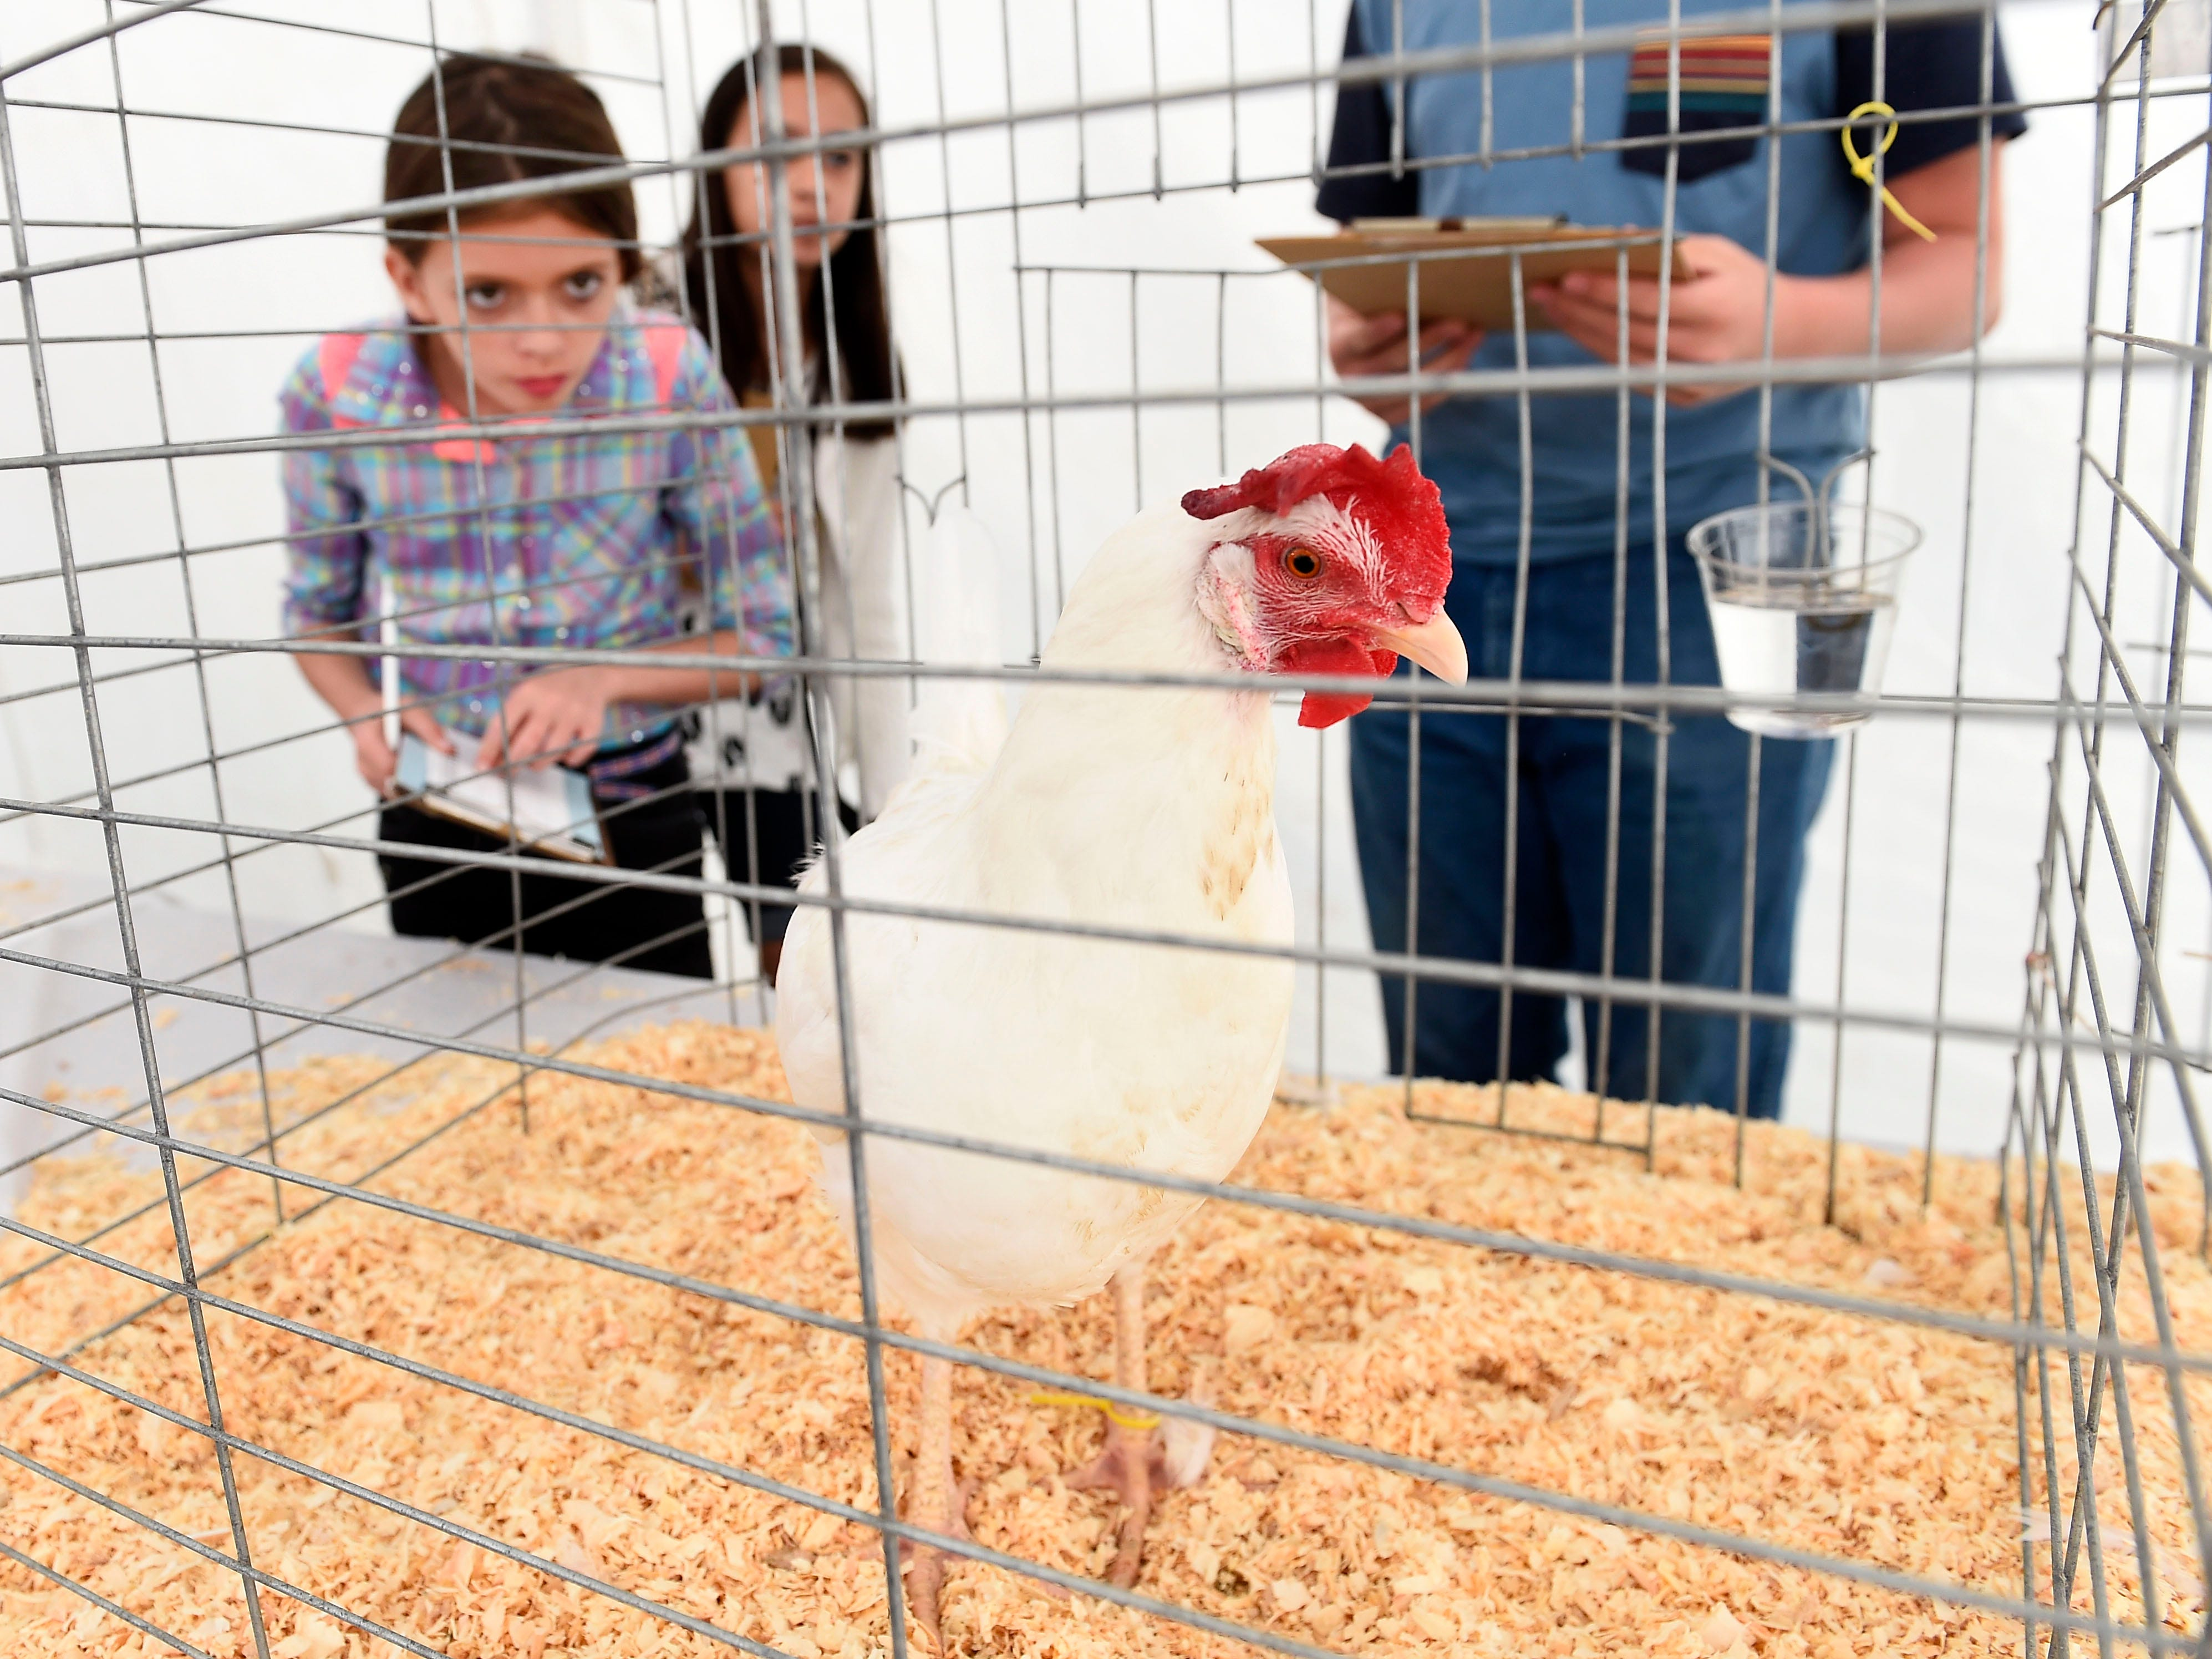 Kendra Sellers, left, competes in the 4-H poultry judging contest at the Tennessee Valley Fair, Sept. 12, 2015. Contestants compete to identify interior and exterior of eggs, live birds, parts identification and several other items.